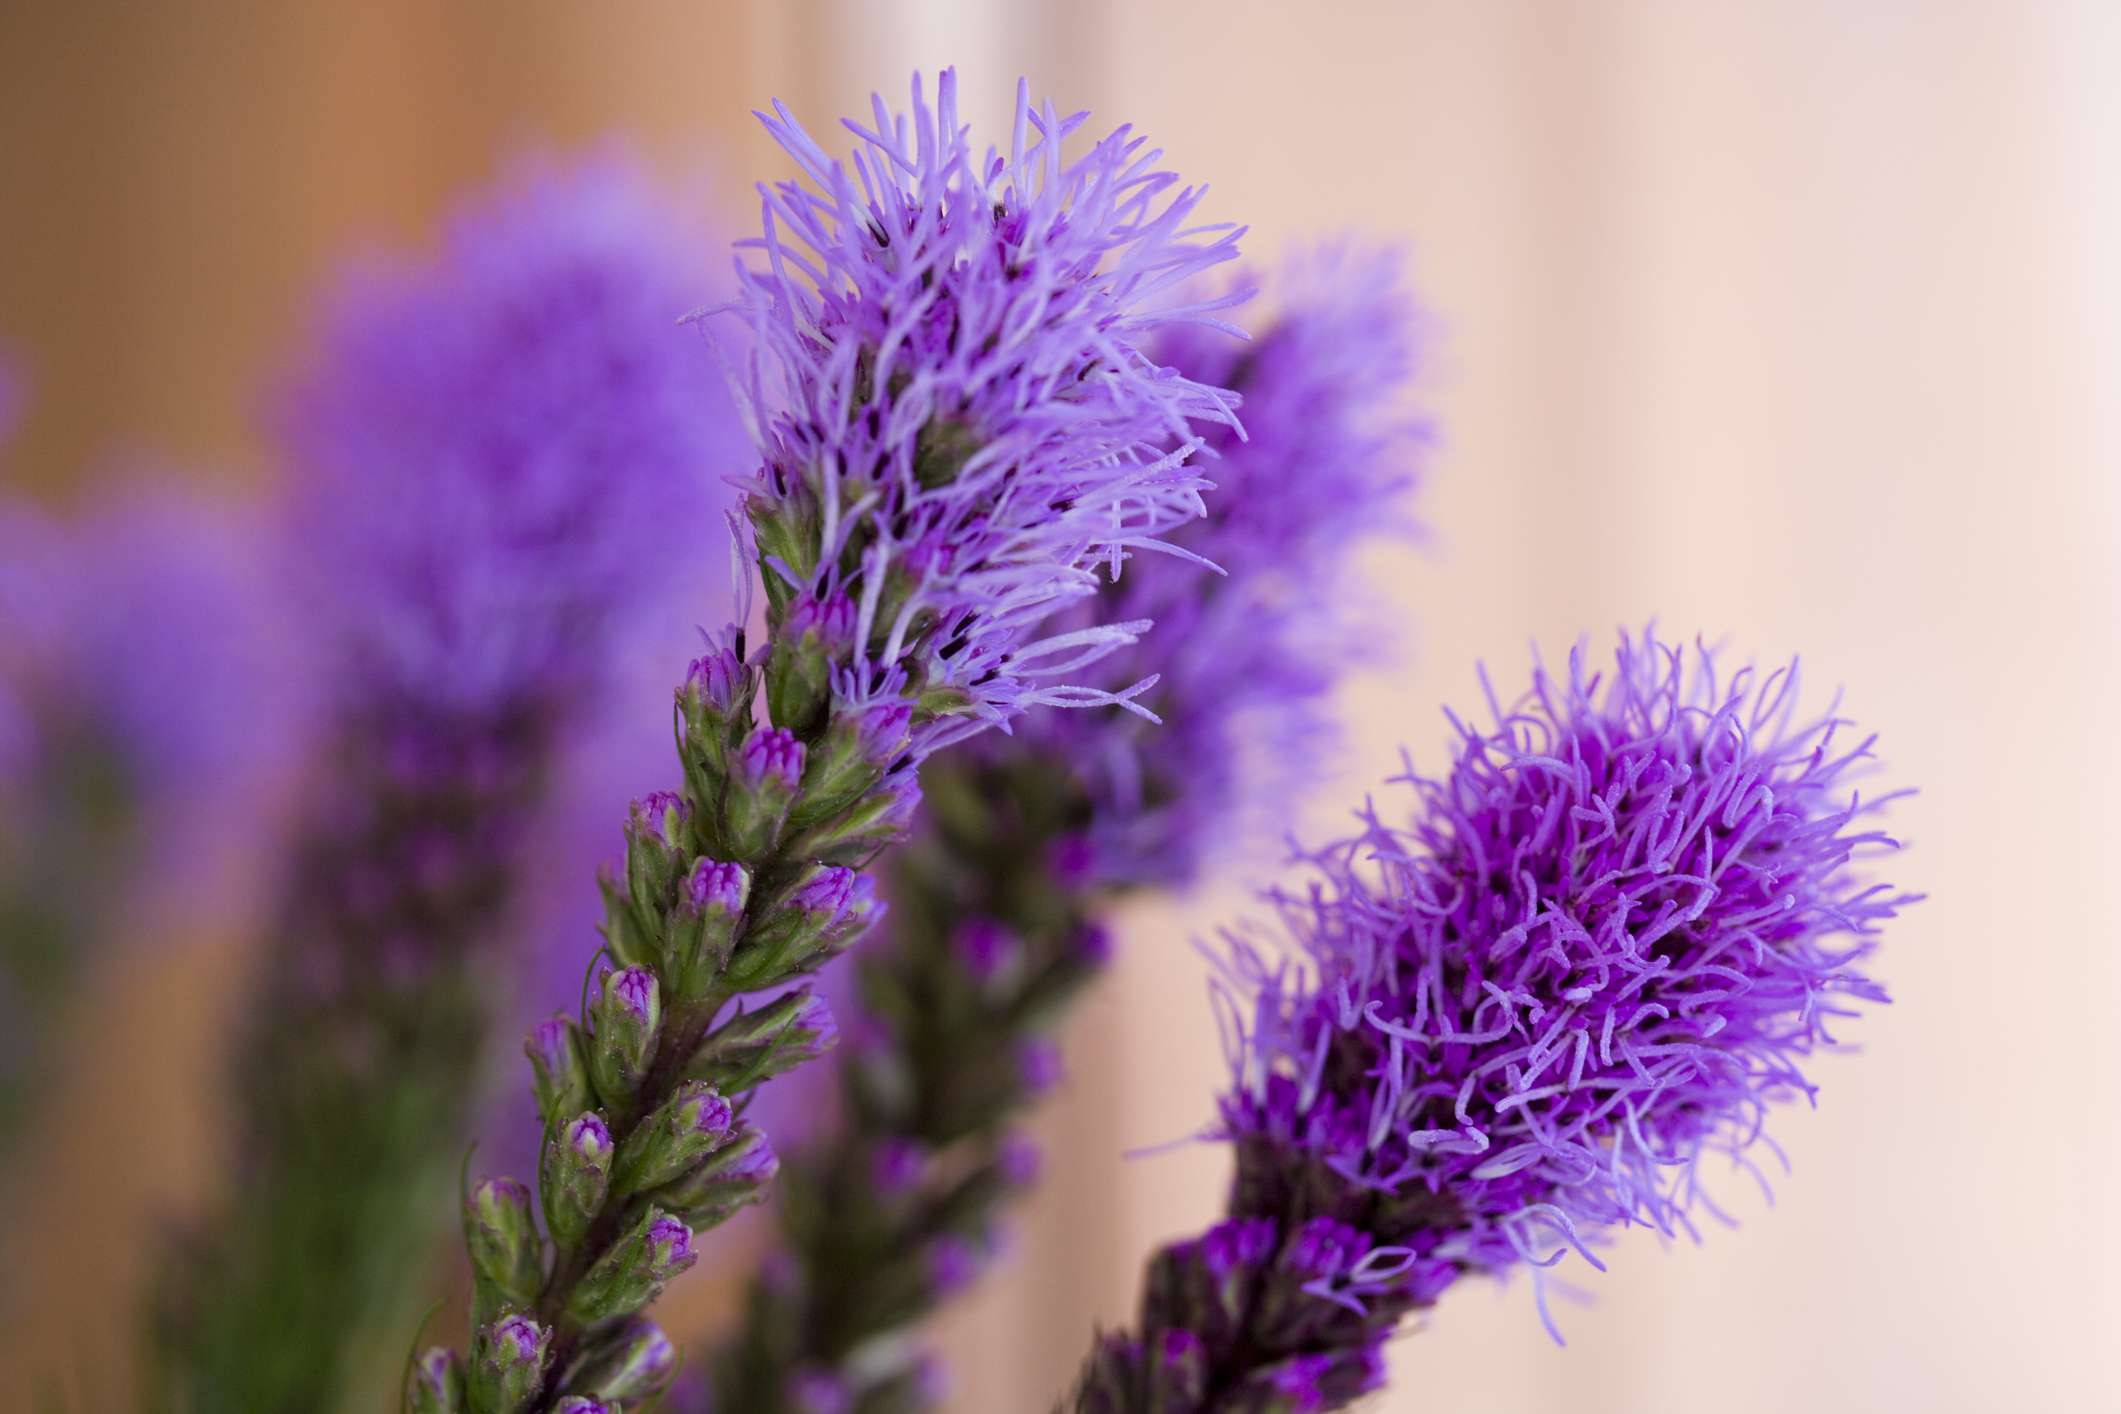 Close up of the flowerheads of the Liatris